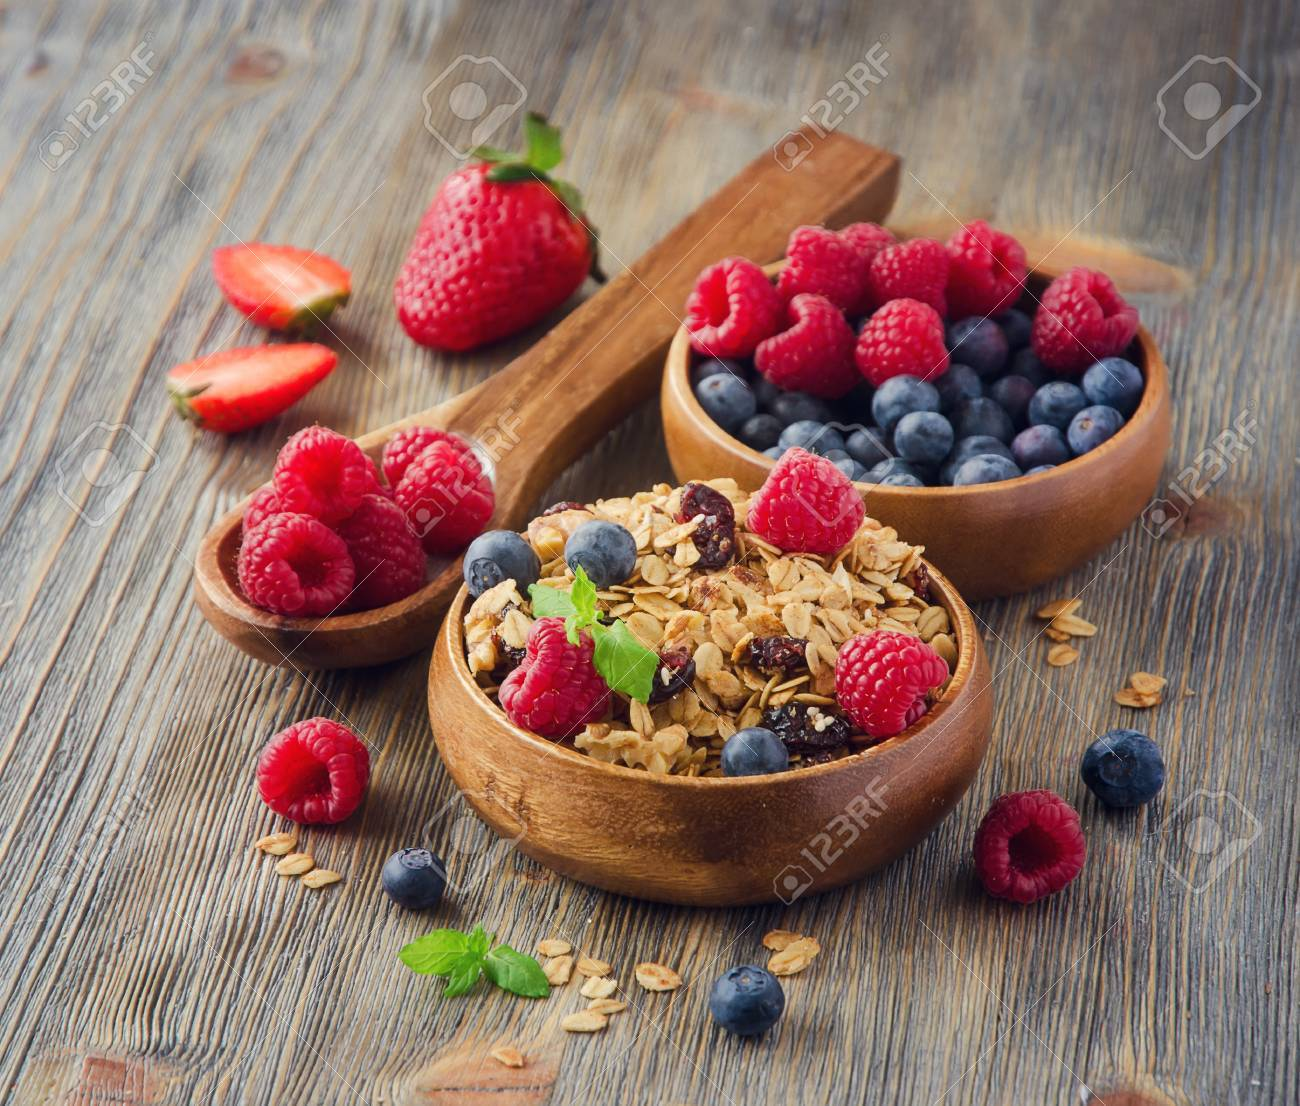 Healthy reakfast with rolled oats and berries in wooden bowls, rustic background, square image - 54942648